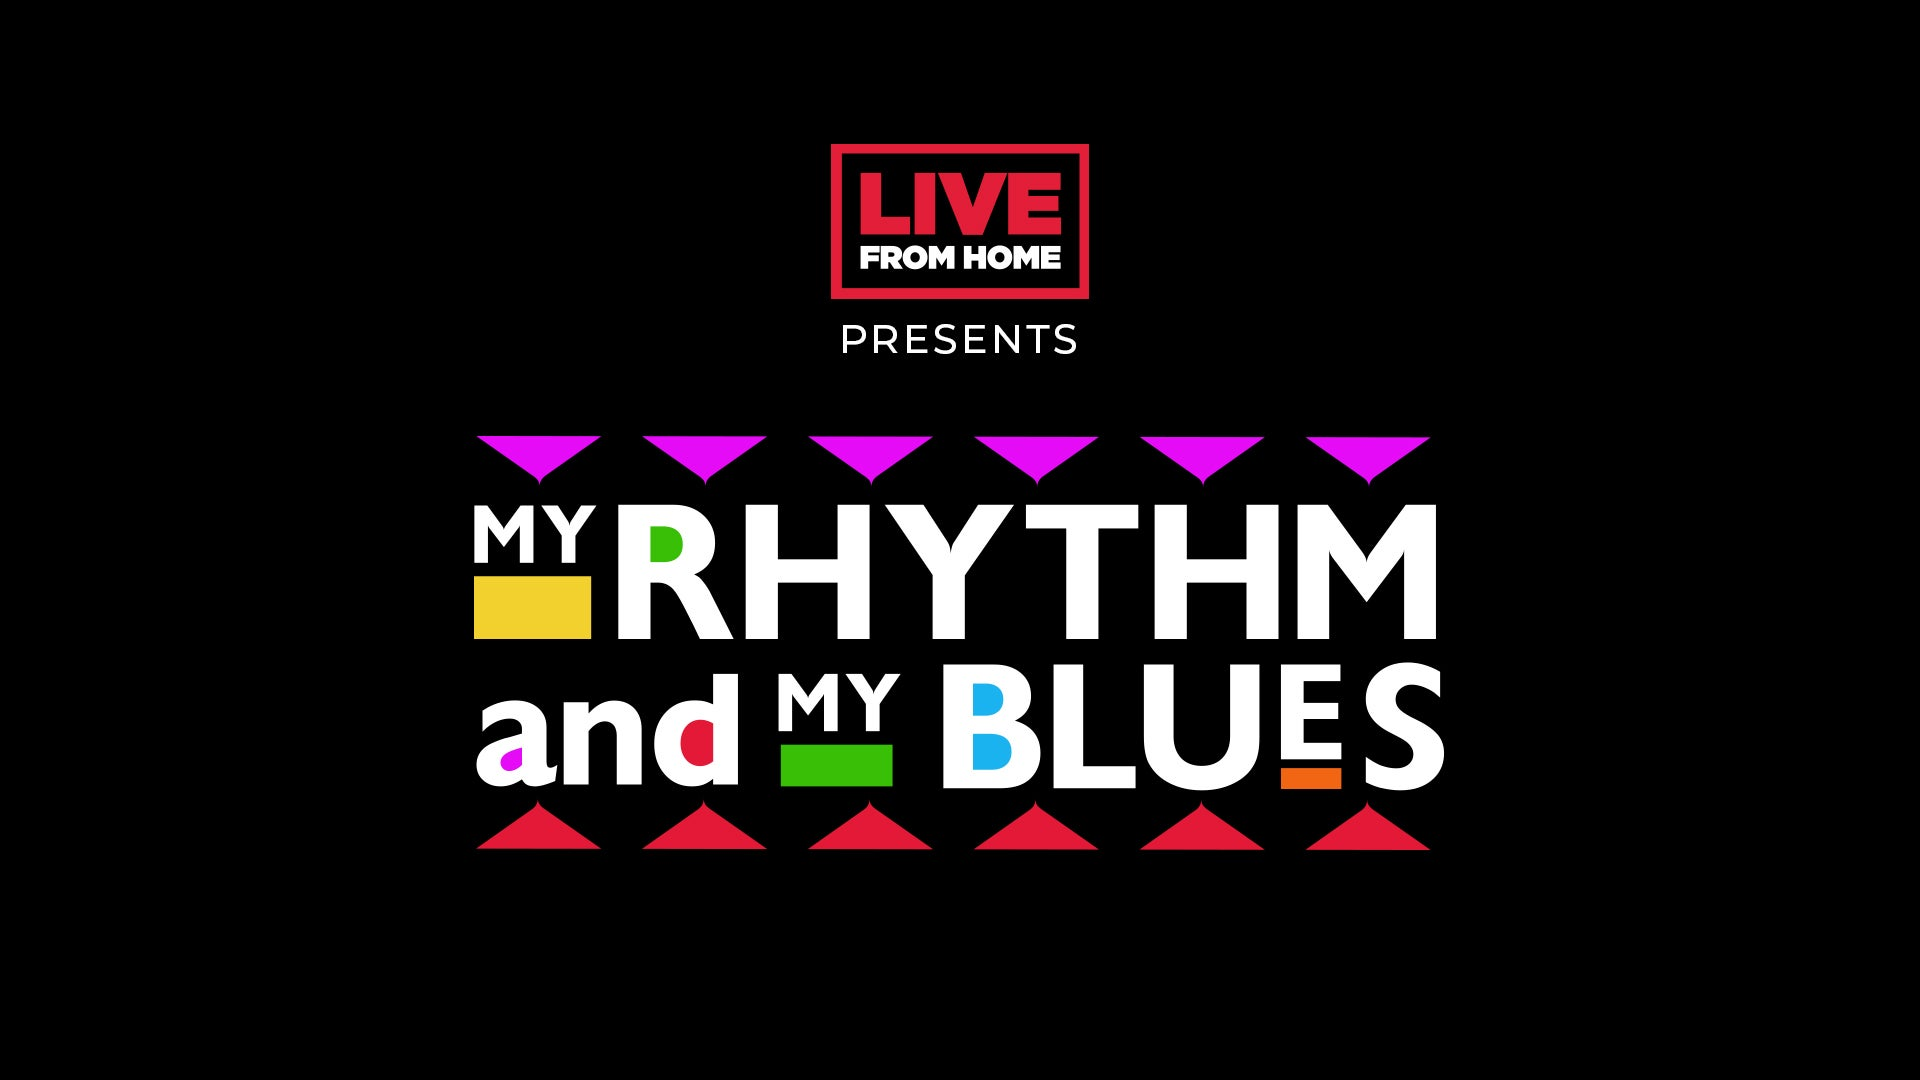 My Rhythm and My Blues